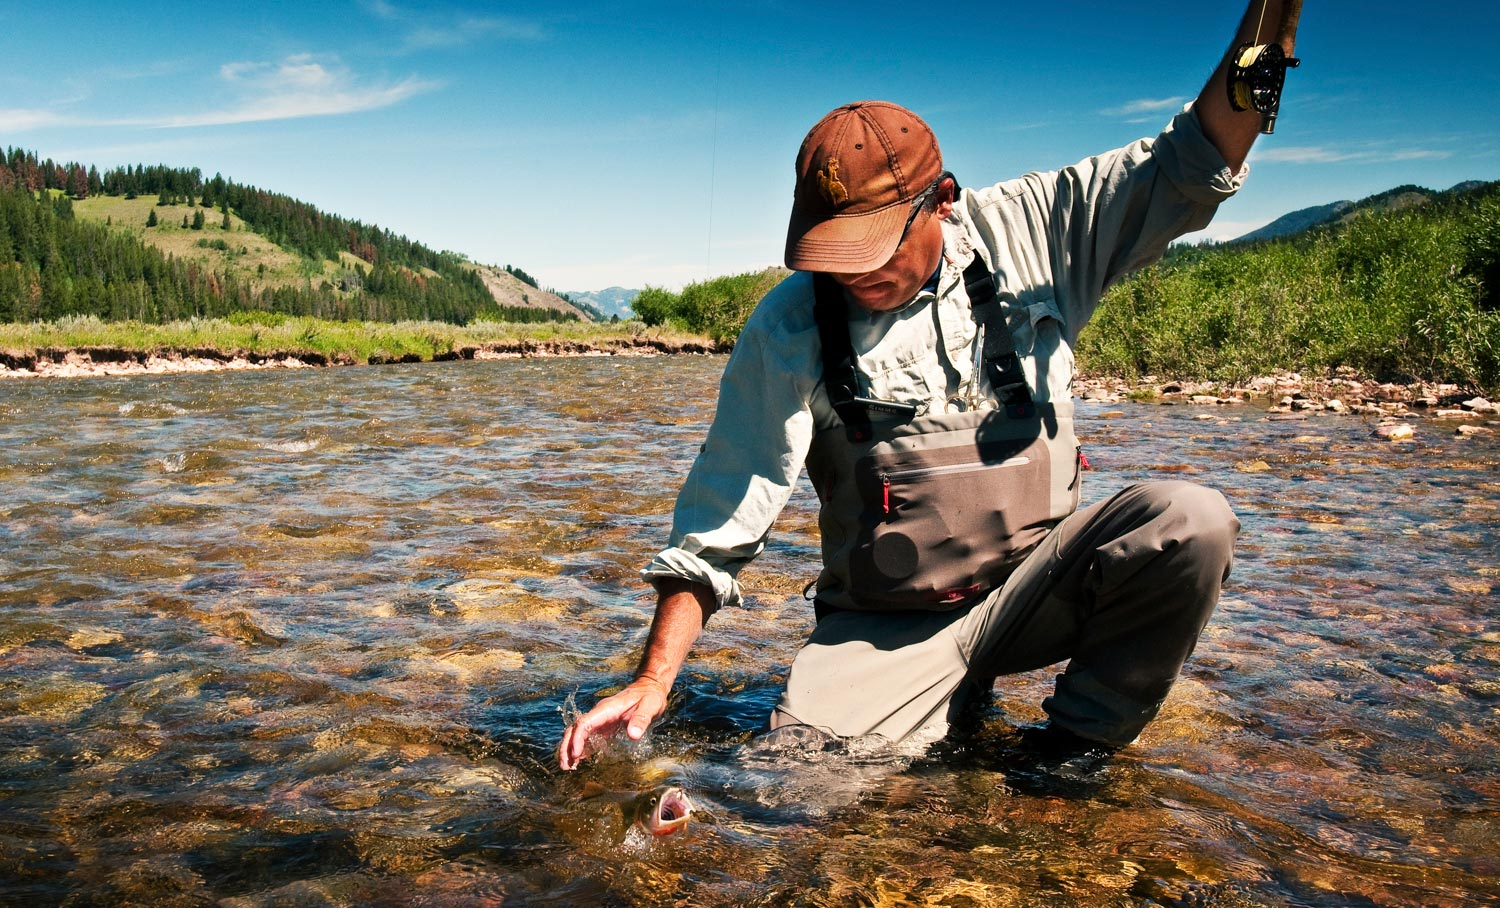 Lock your forceps fly fishing gink and gasoline how for Fly fishing blogs